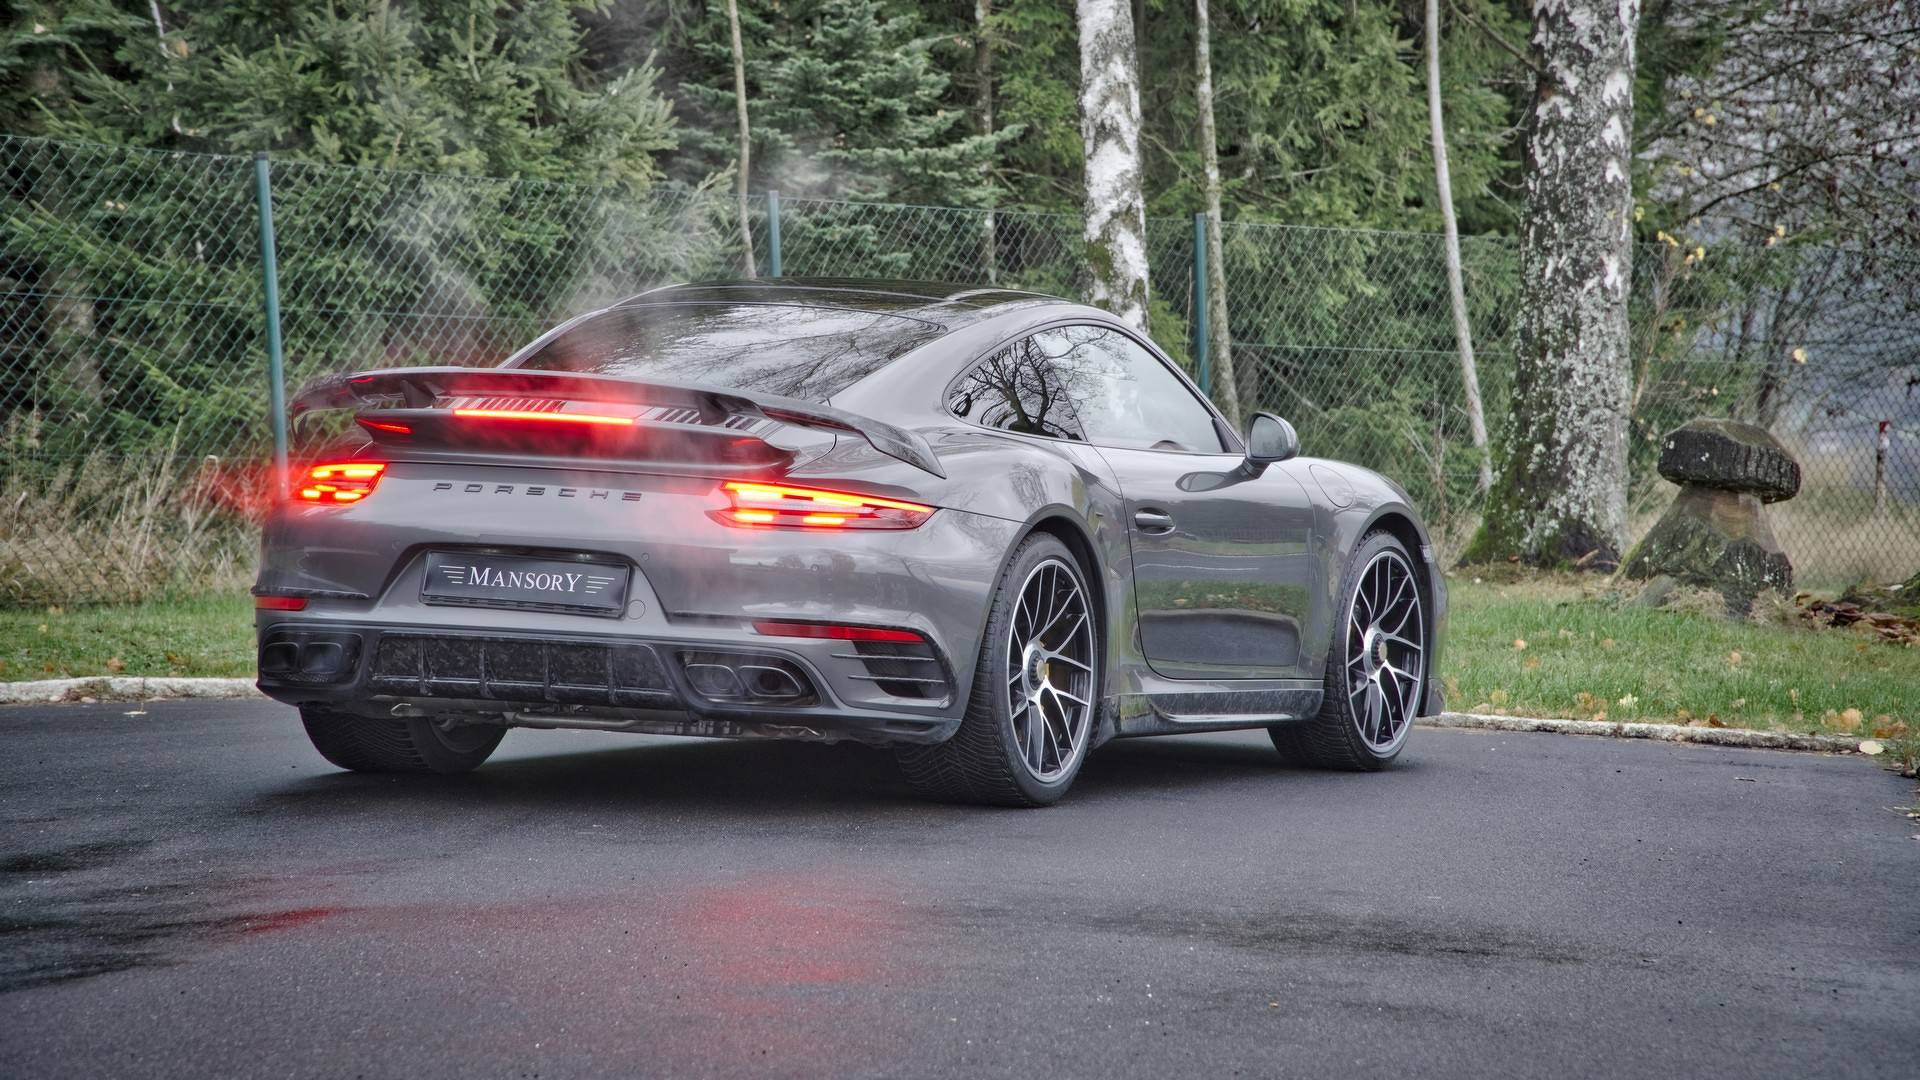 porsche 911 turbo smansory is surprisingly restrained